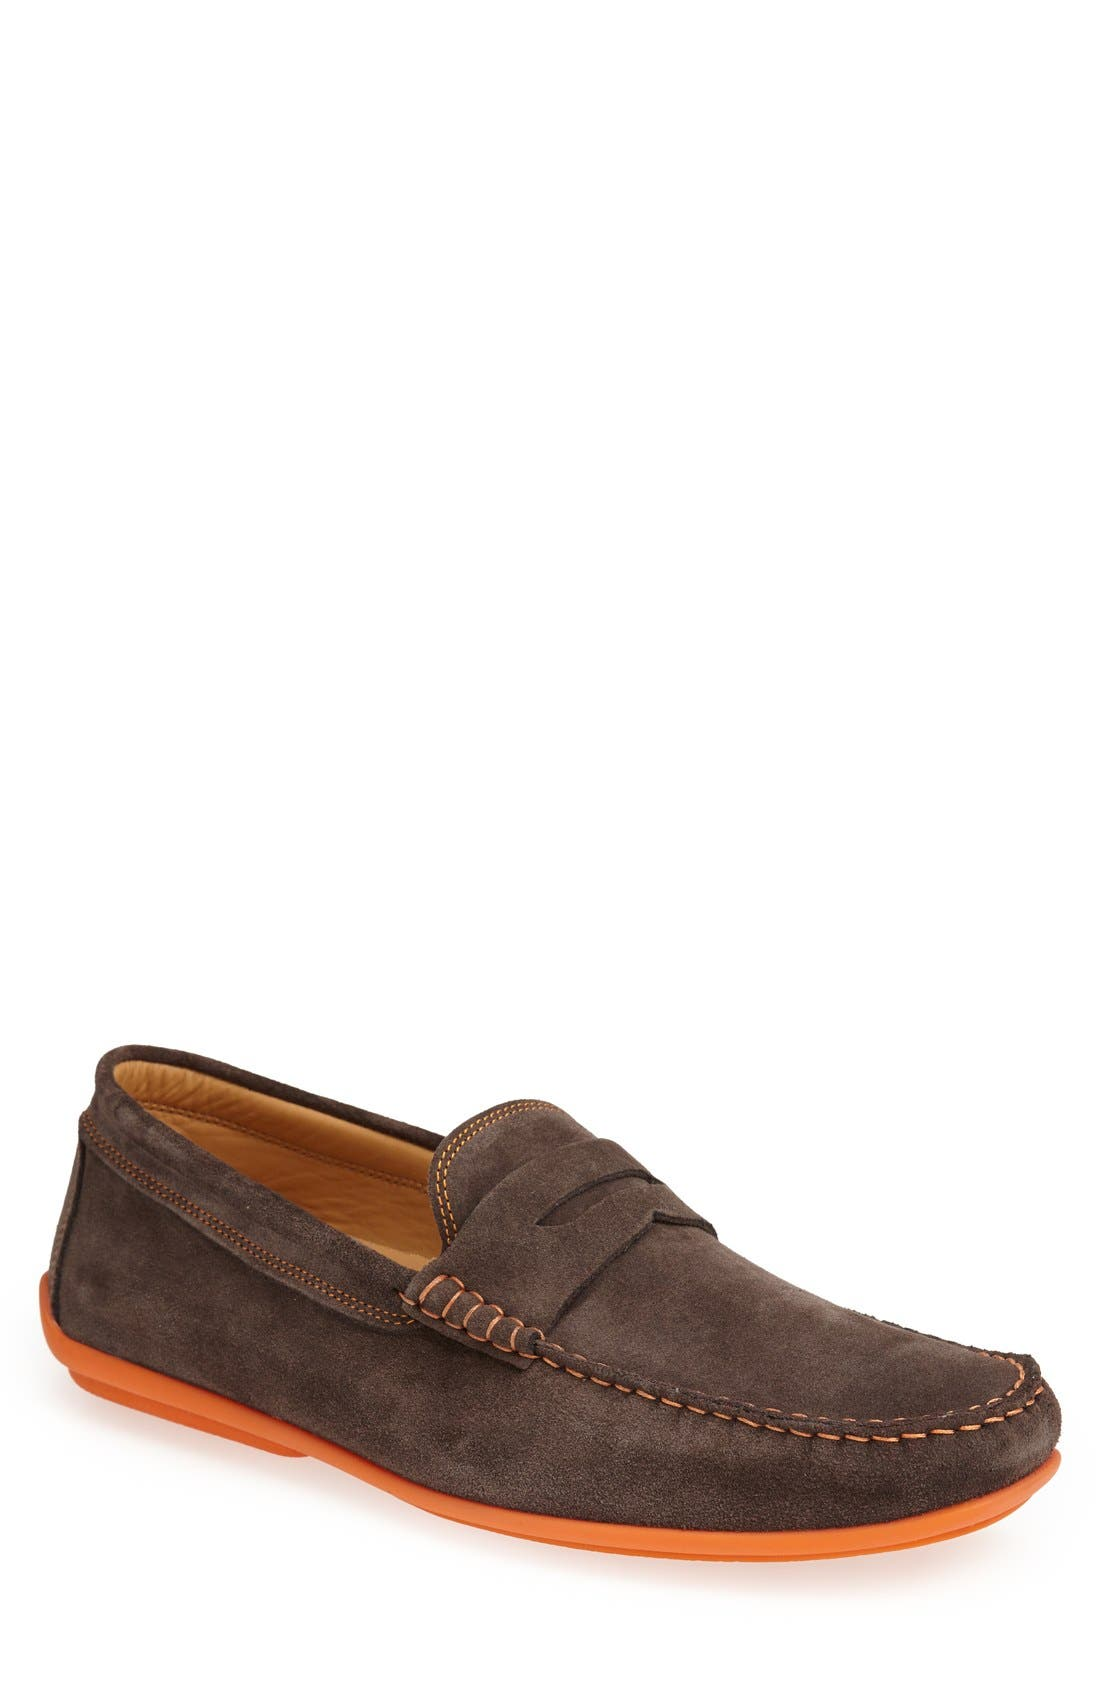 'North Sides' Penny Loafer,                             Main thumbnail 1, color,                             Brown Suede/ Orange